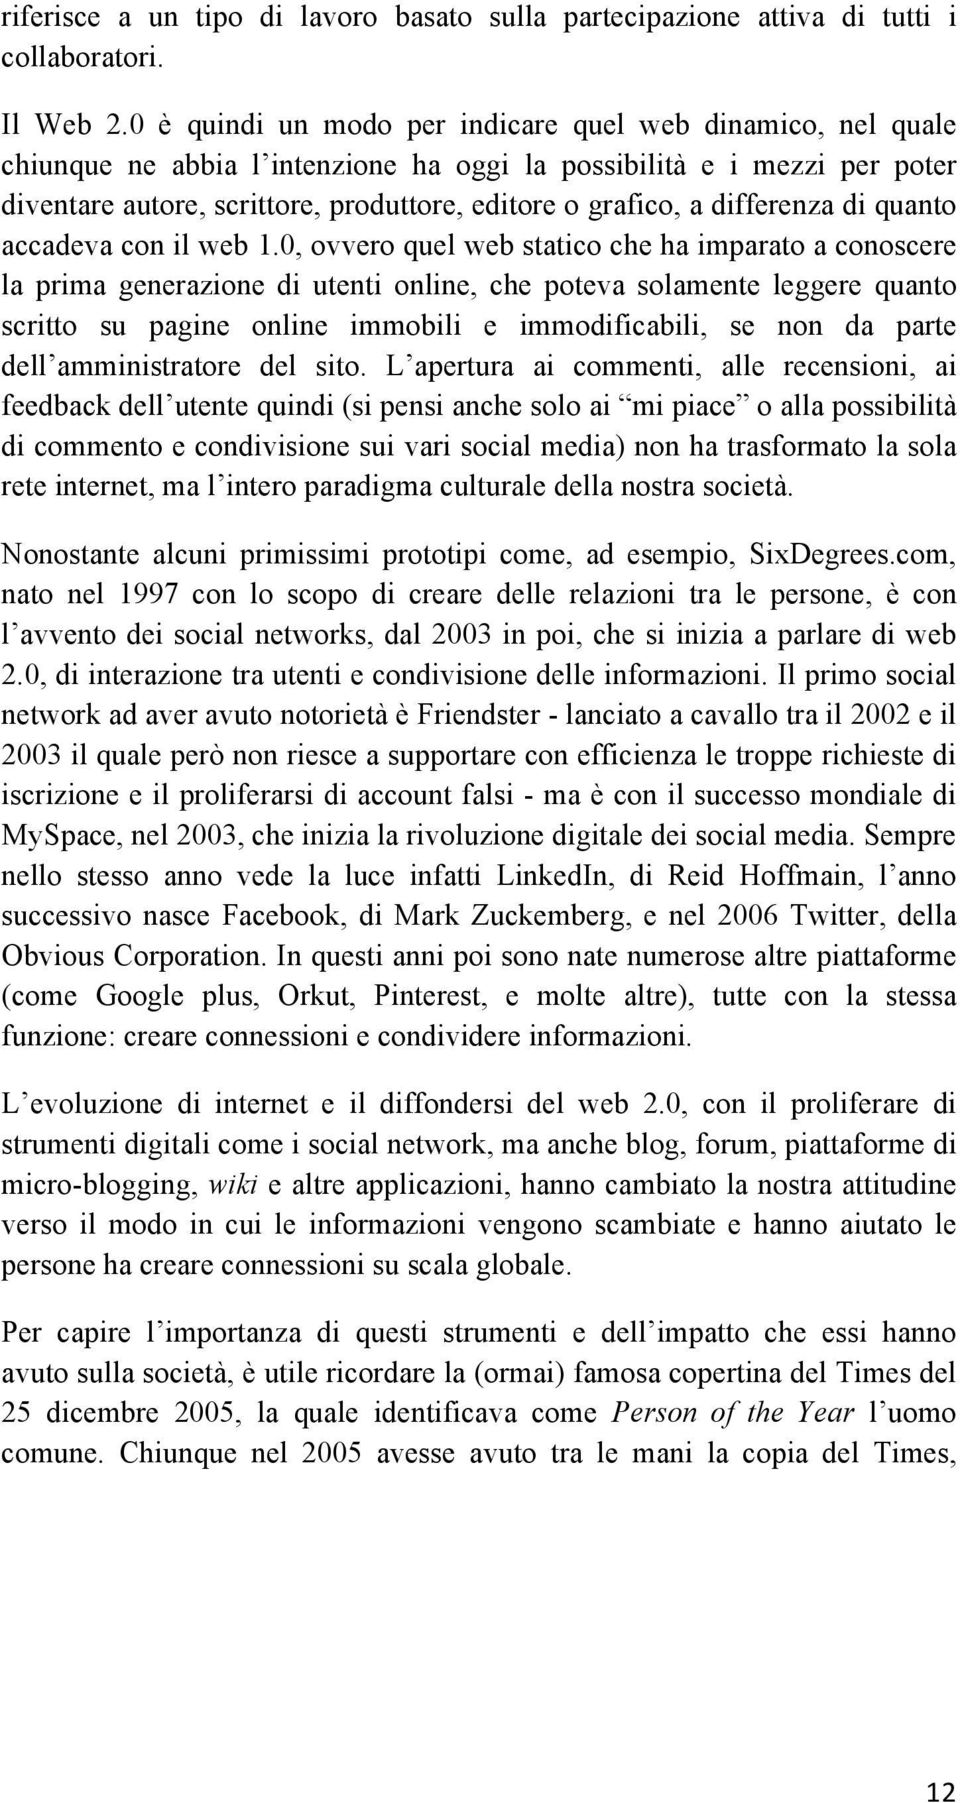 differenza di quanto accadeva con il web 1.